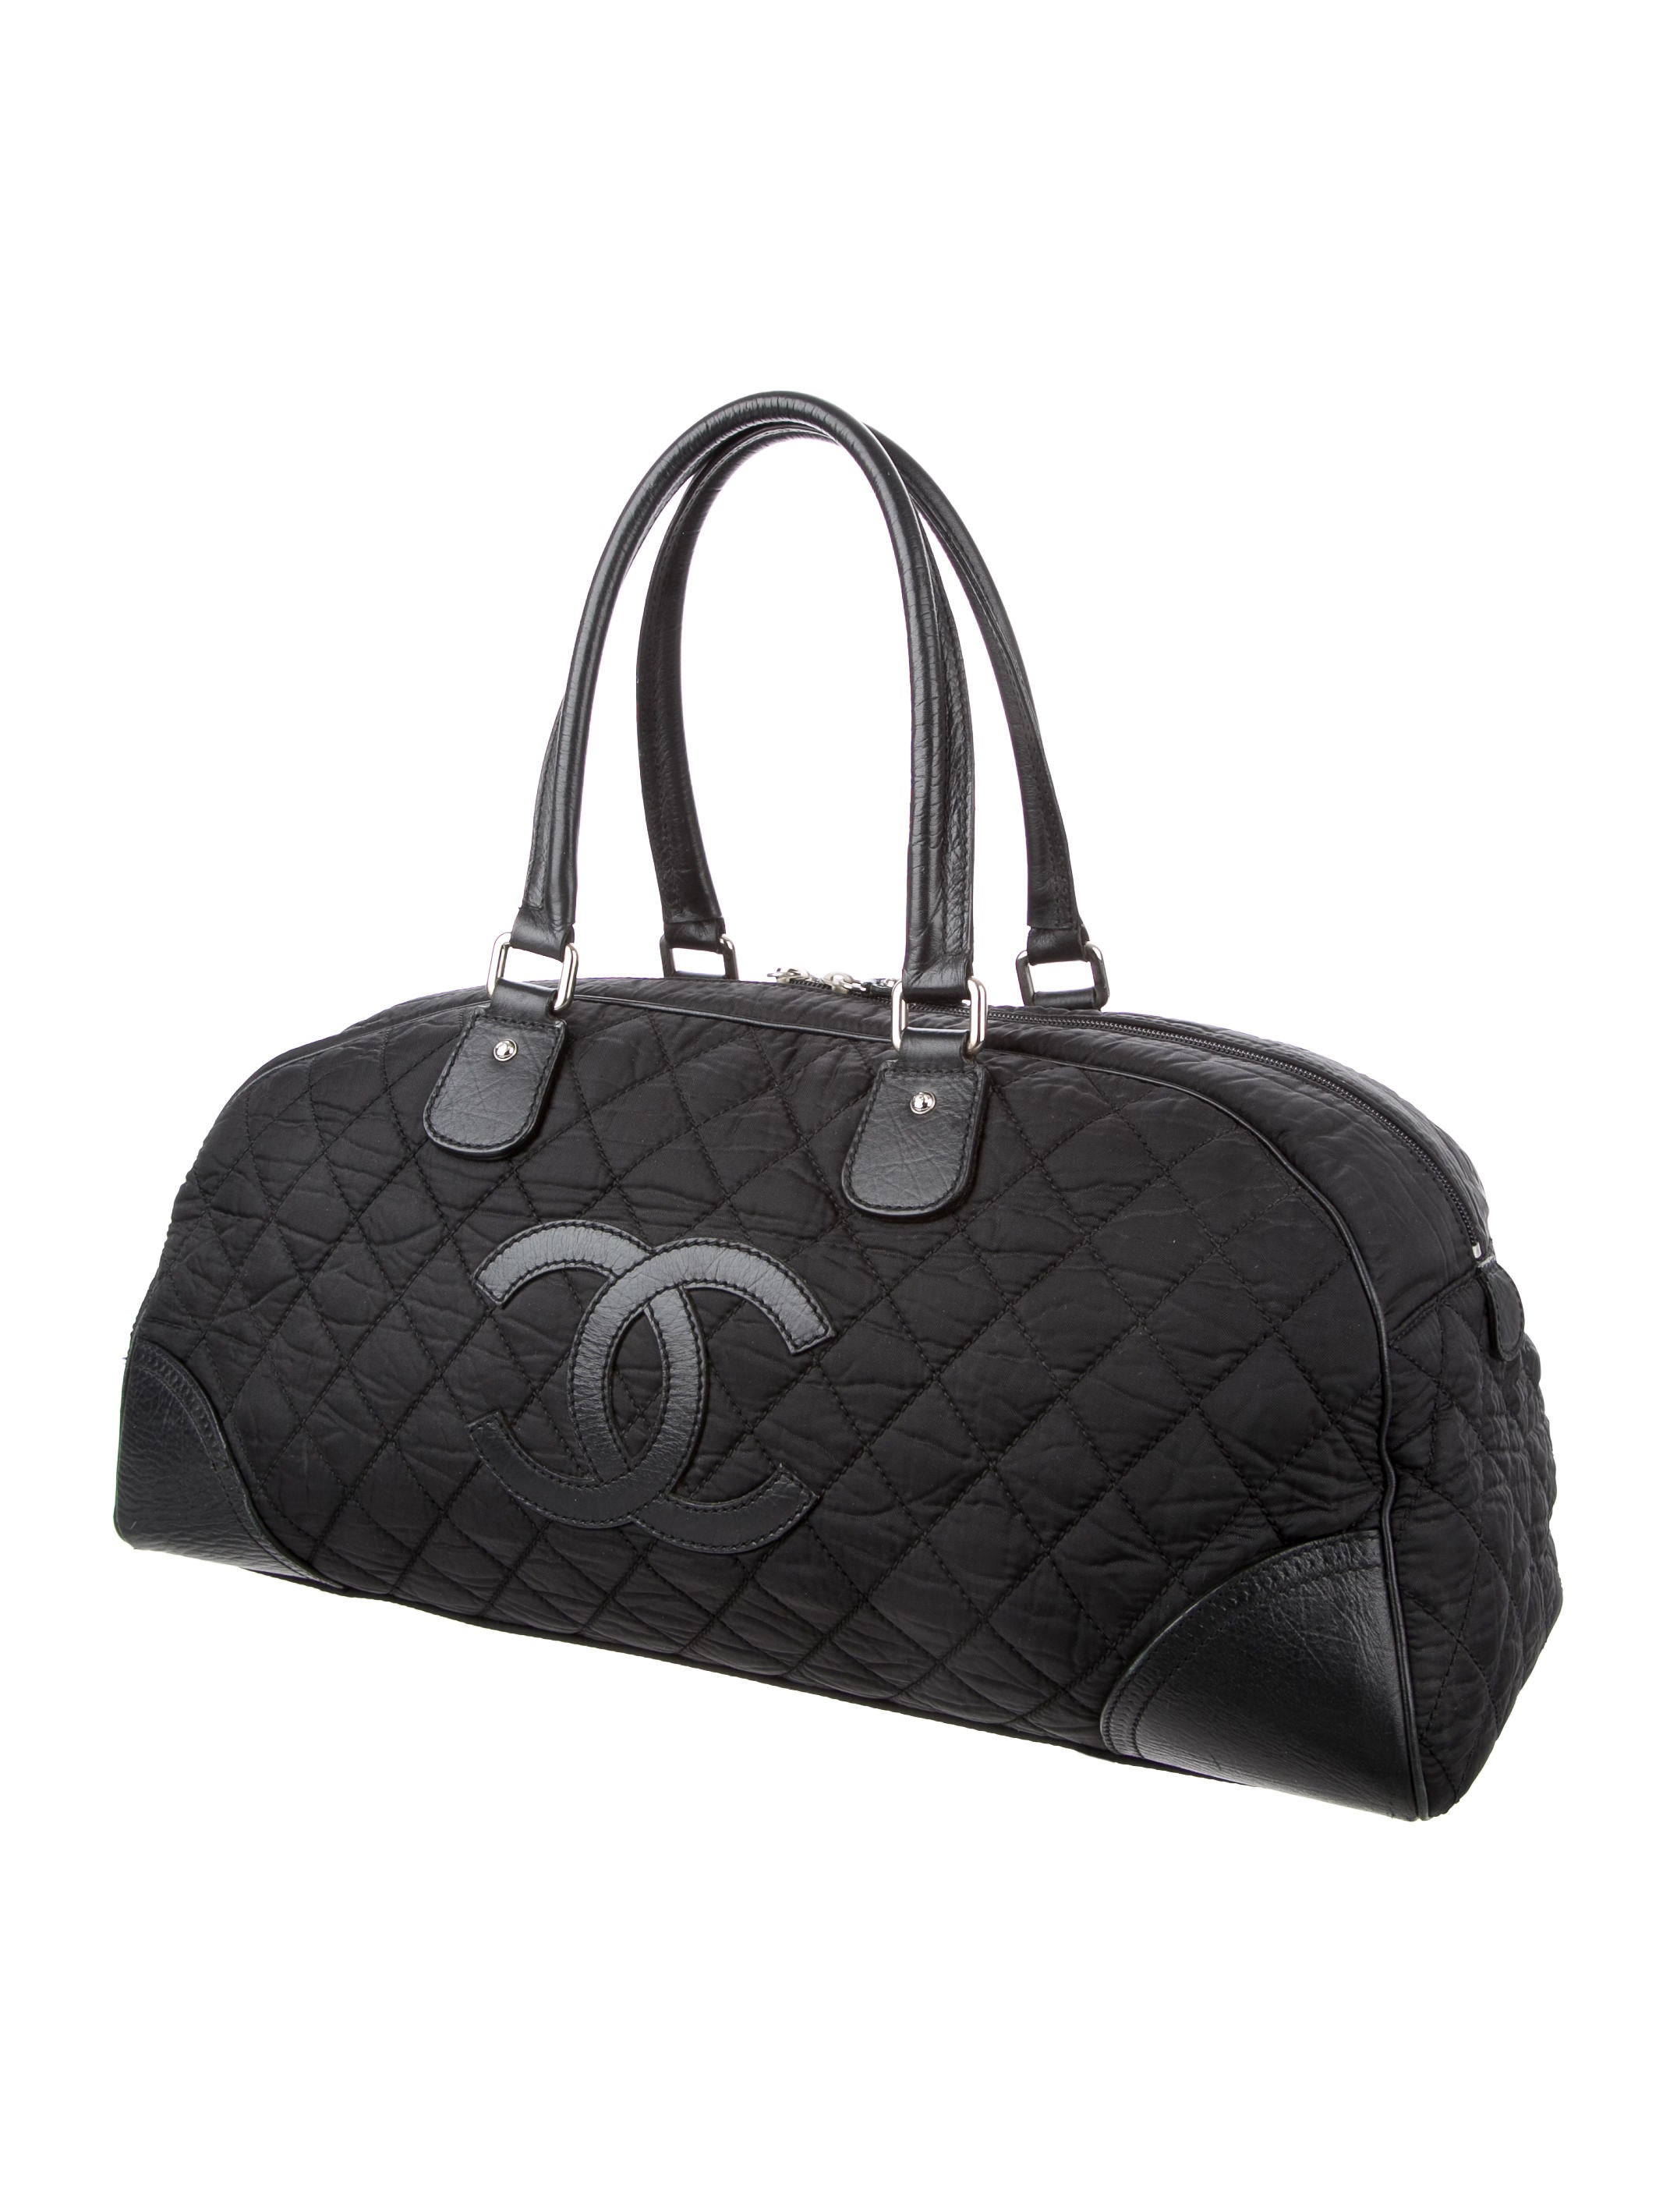 Chanel Quilted Cc Duffle Bag Handbags Cha159600 The